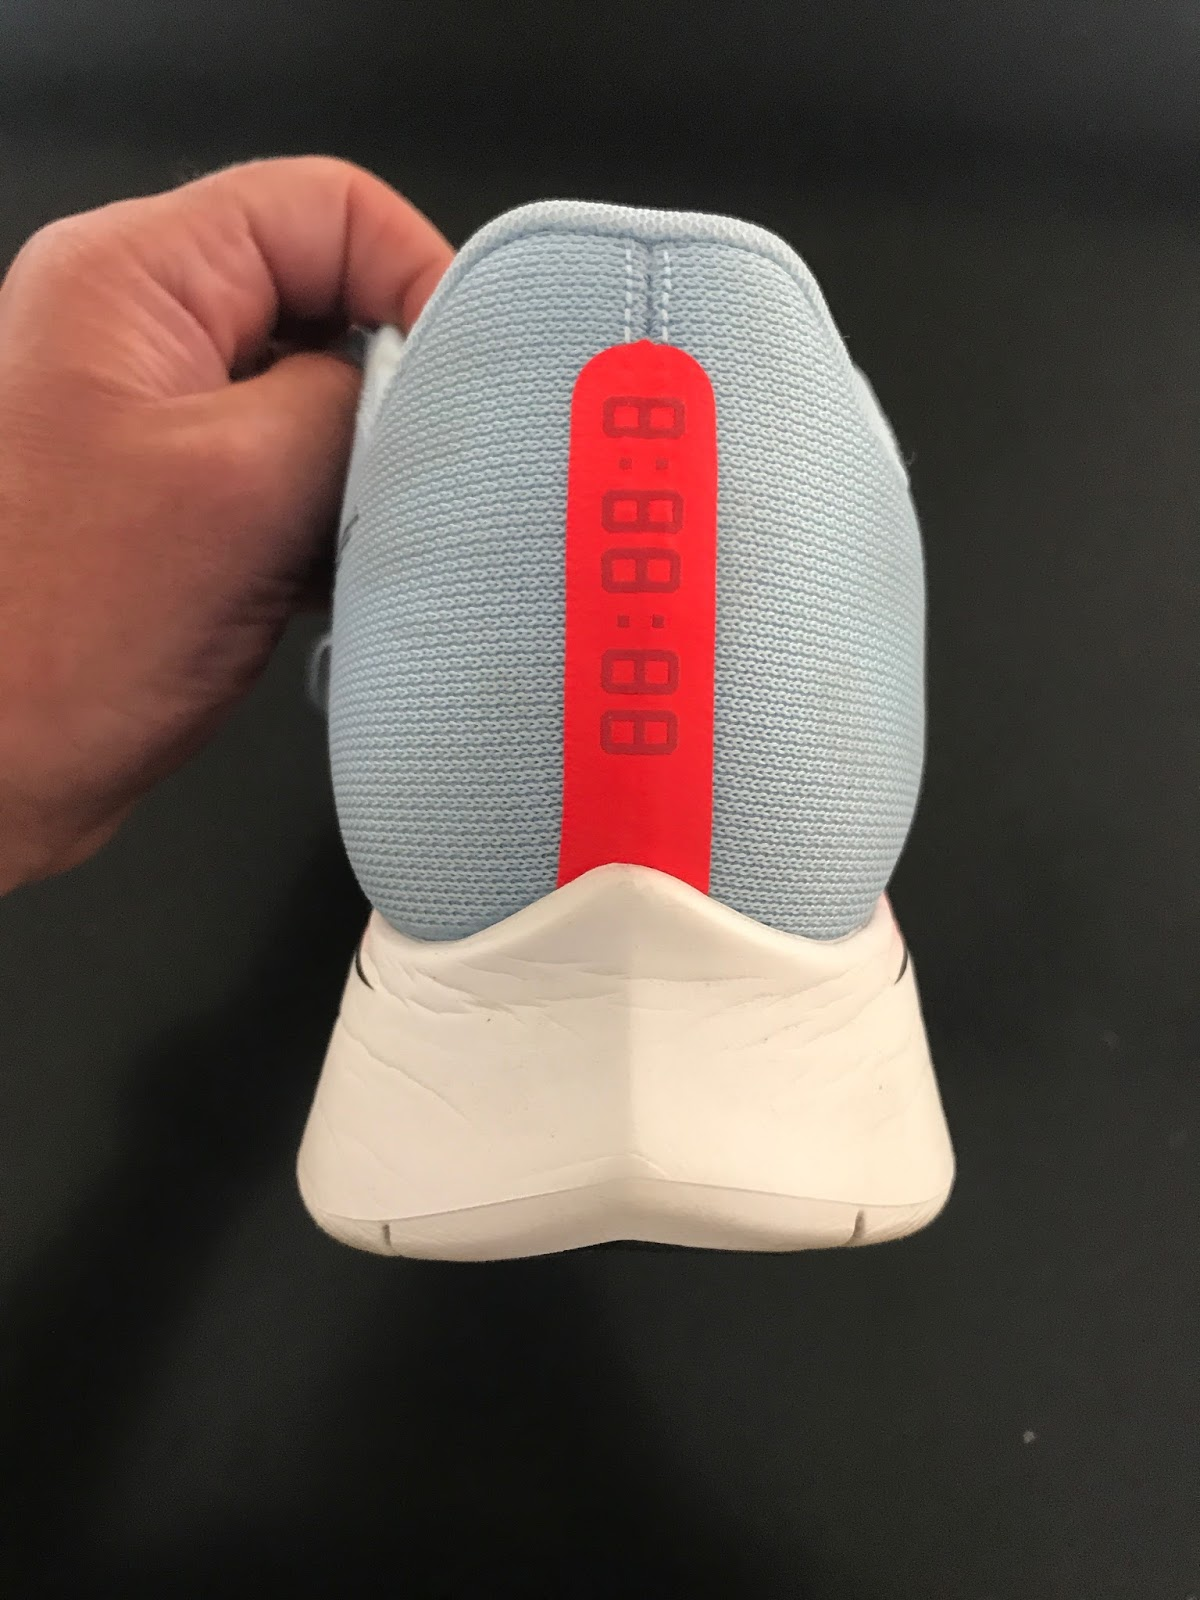 d32fbae0165 Understanding these are very early first impressions but this is not my  first run shoe rodeo either... I think Zoom Fly is a shoe designed for